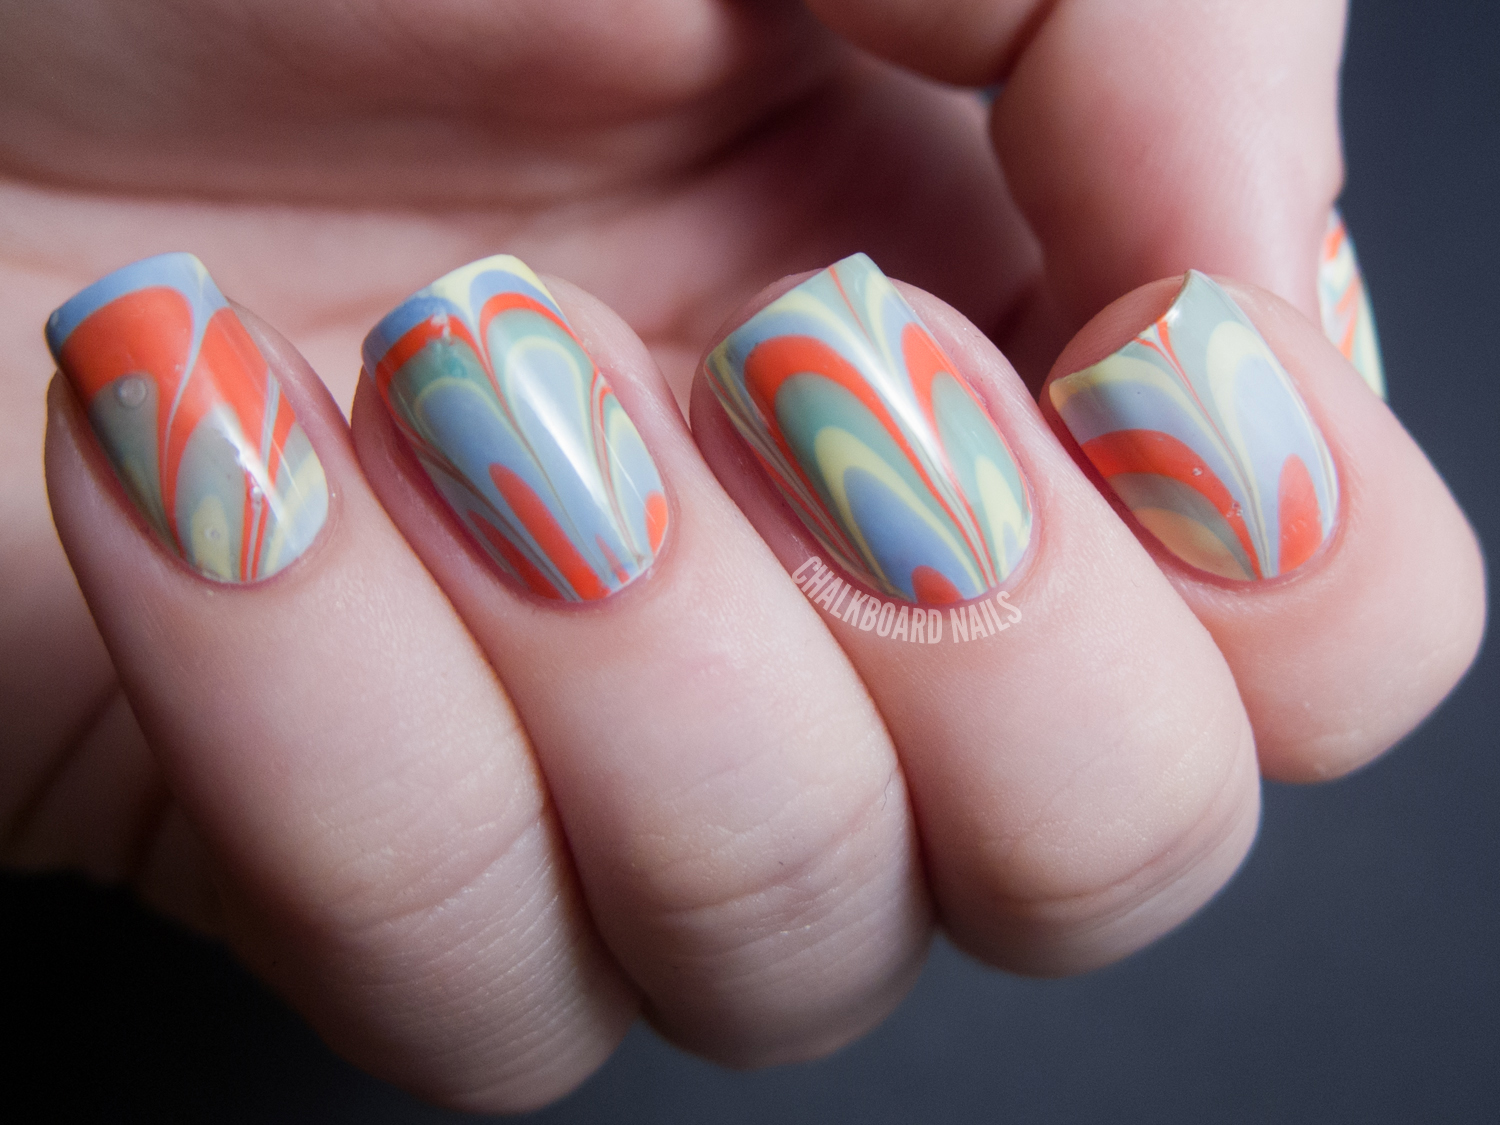 Lcn blossom sorbet water marble chalkboard nails nail art blog besides the yellow acting like a well a yellow the formulas on all of these shades were nice i love the consistency of lcn polish prinsesfo Image collections